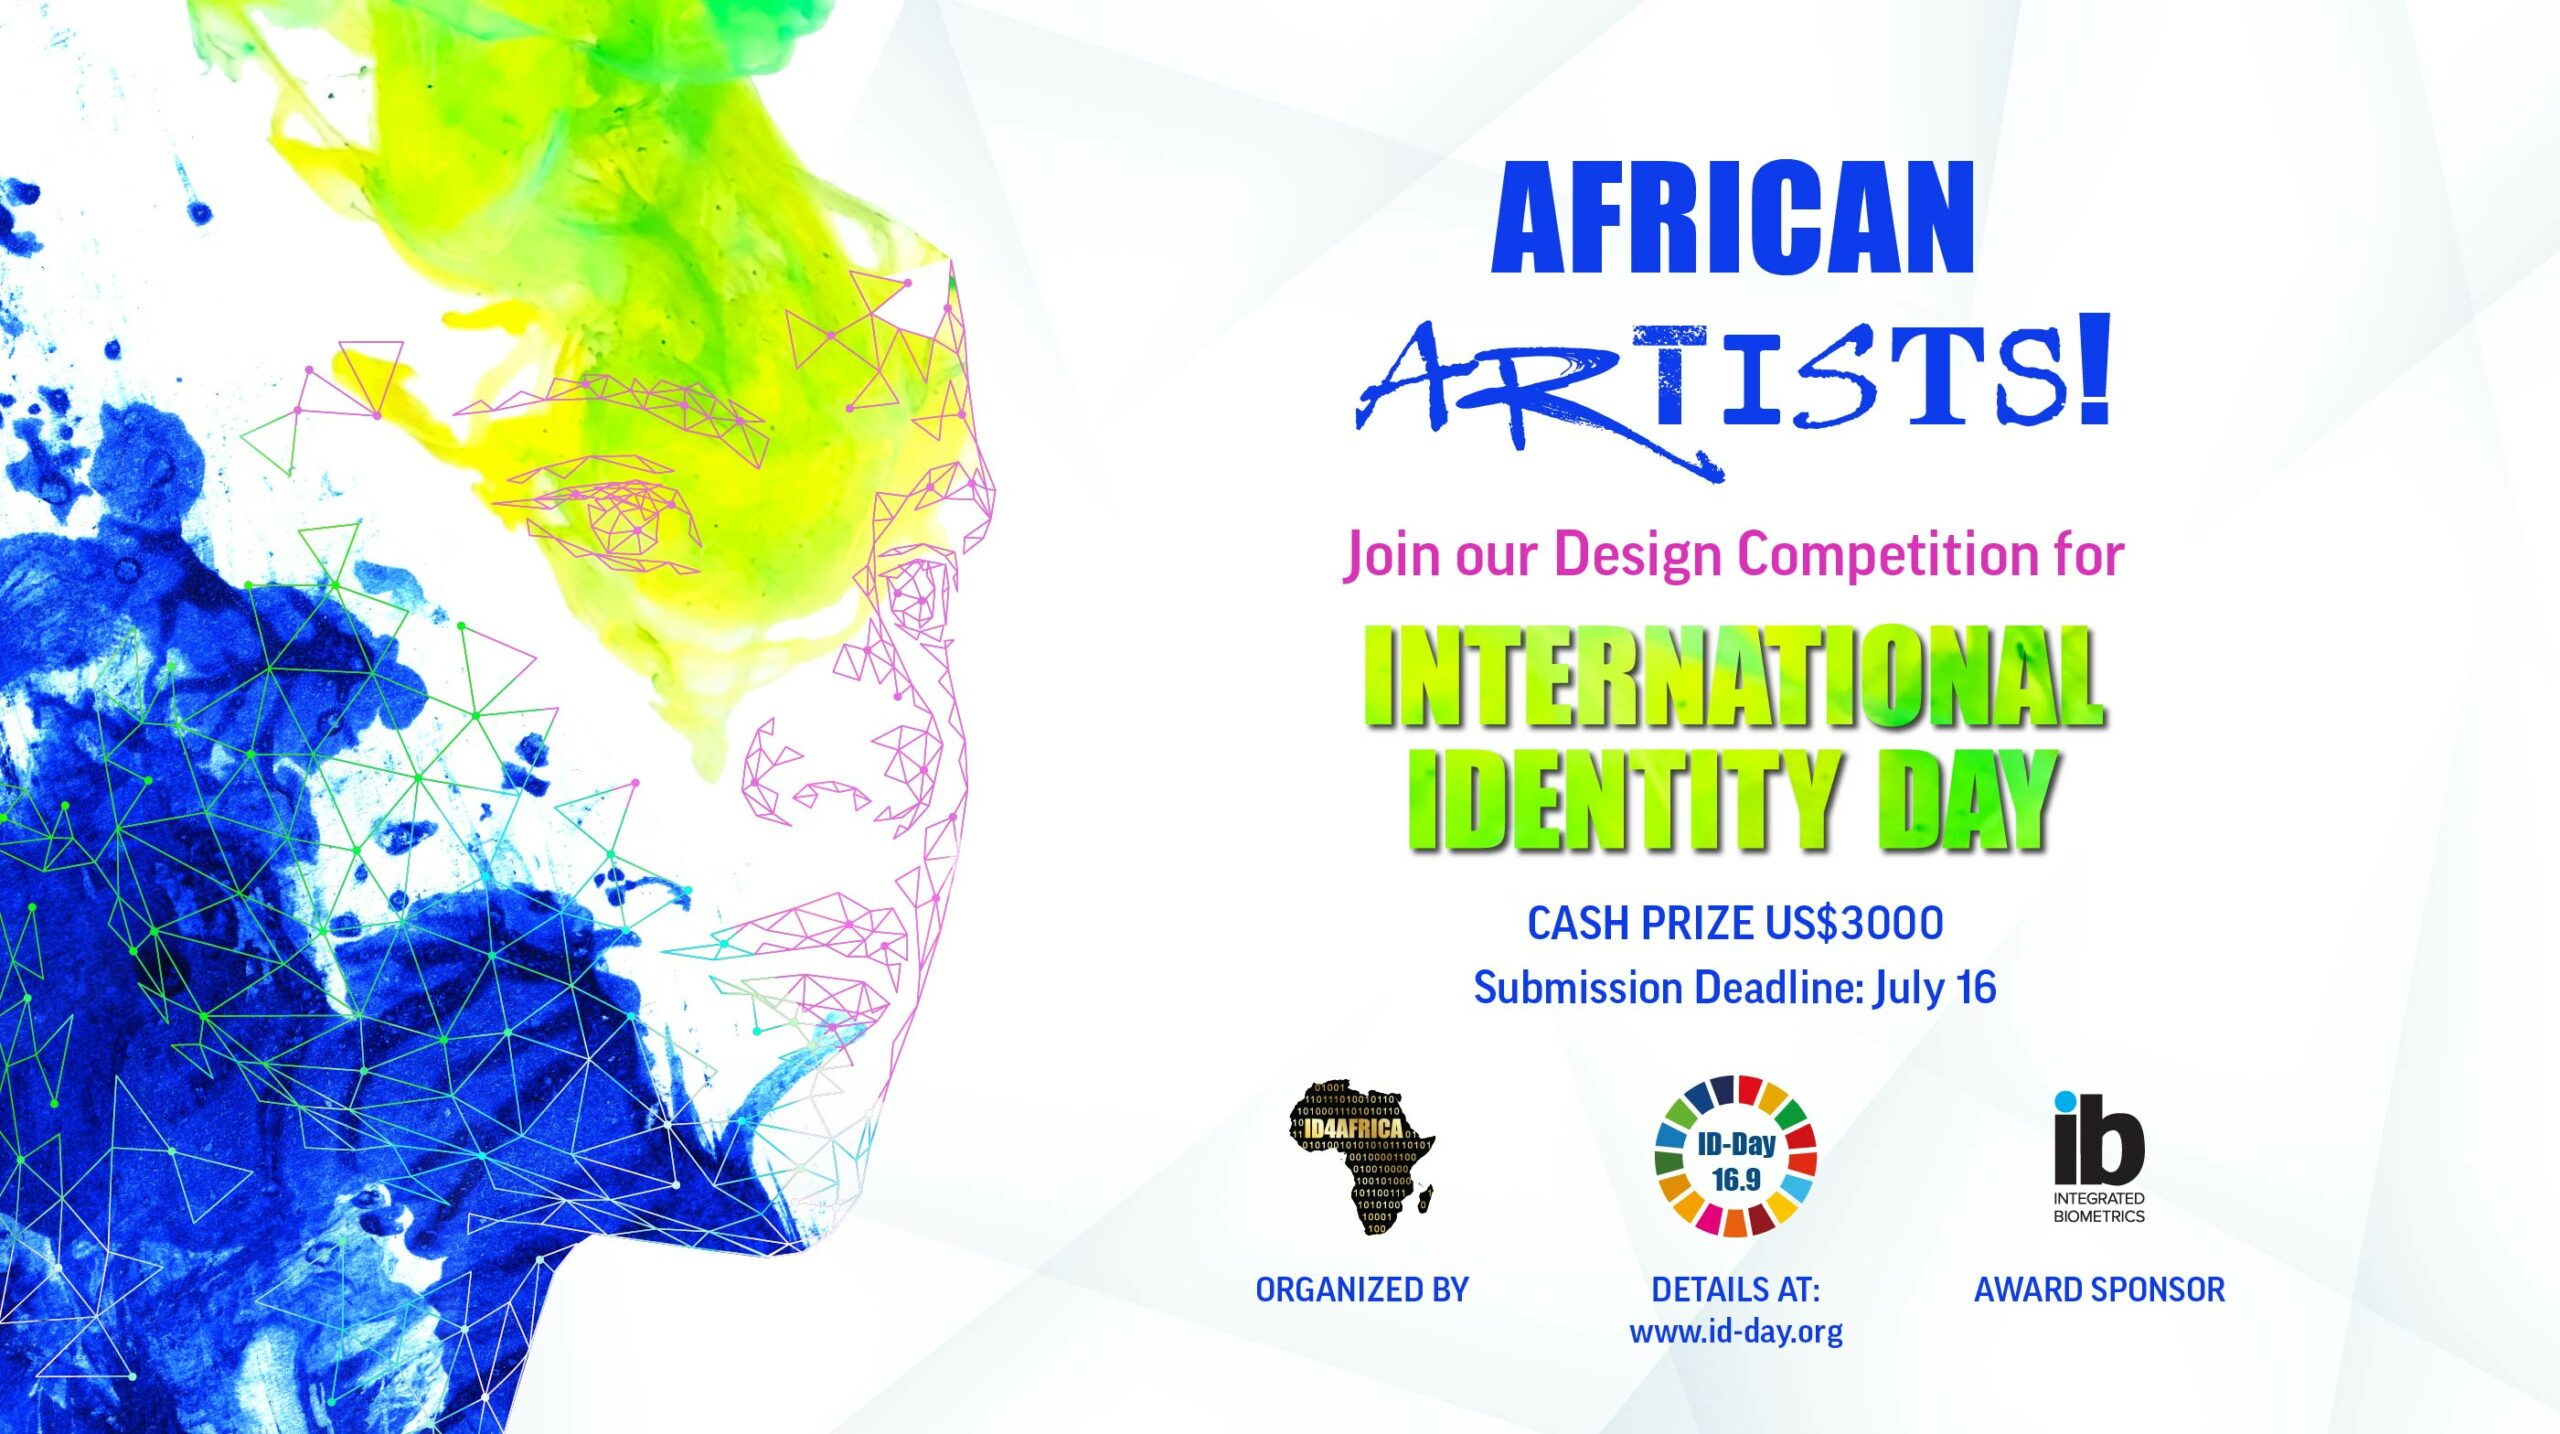 International Identity Day Design Competition 2021 for African Digital Artists (US$3000 prize)